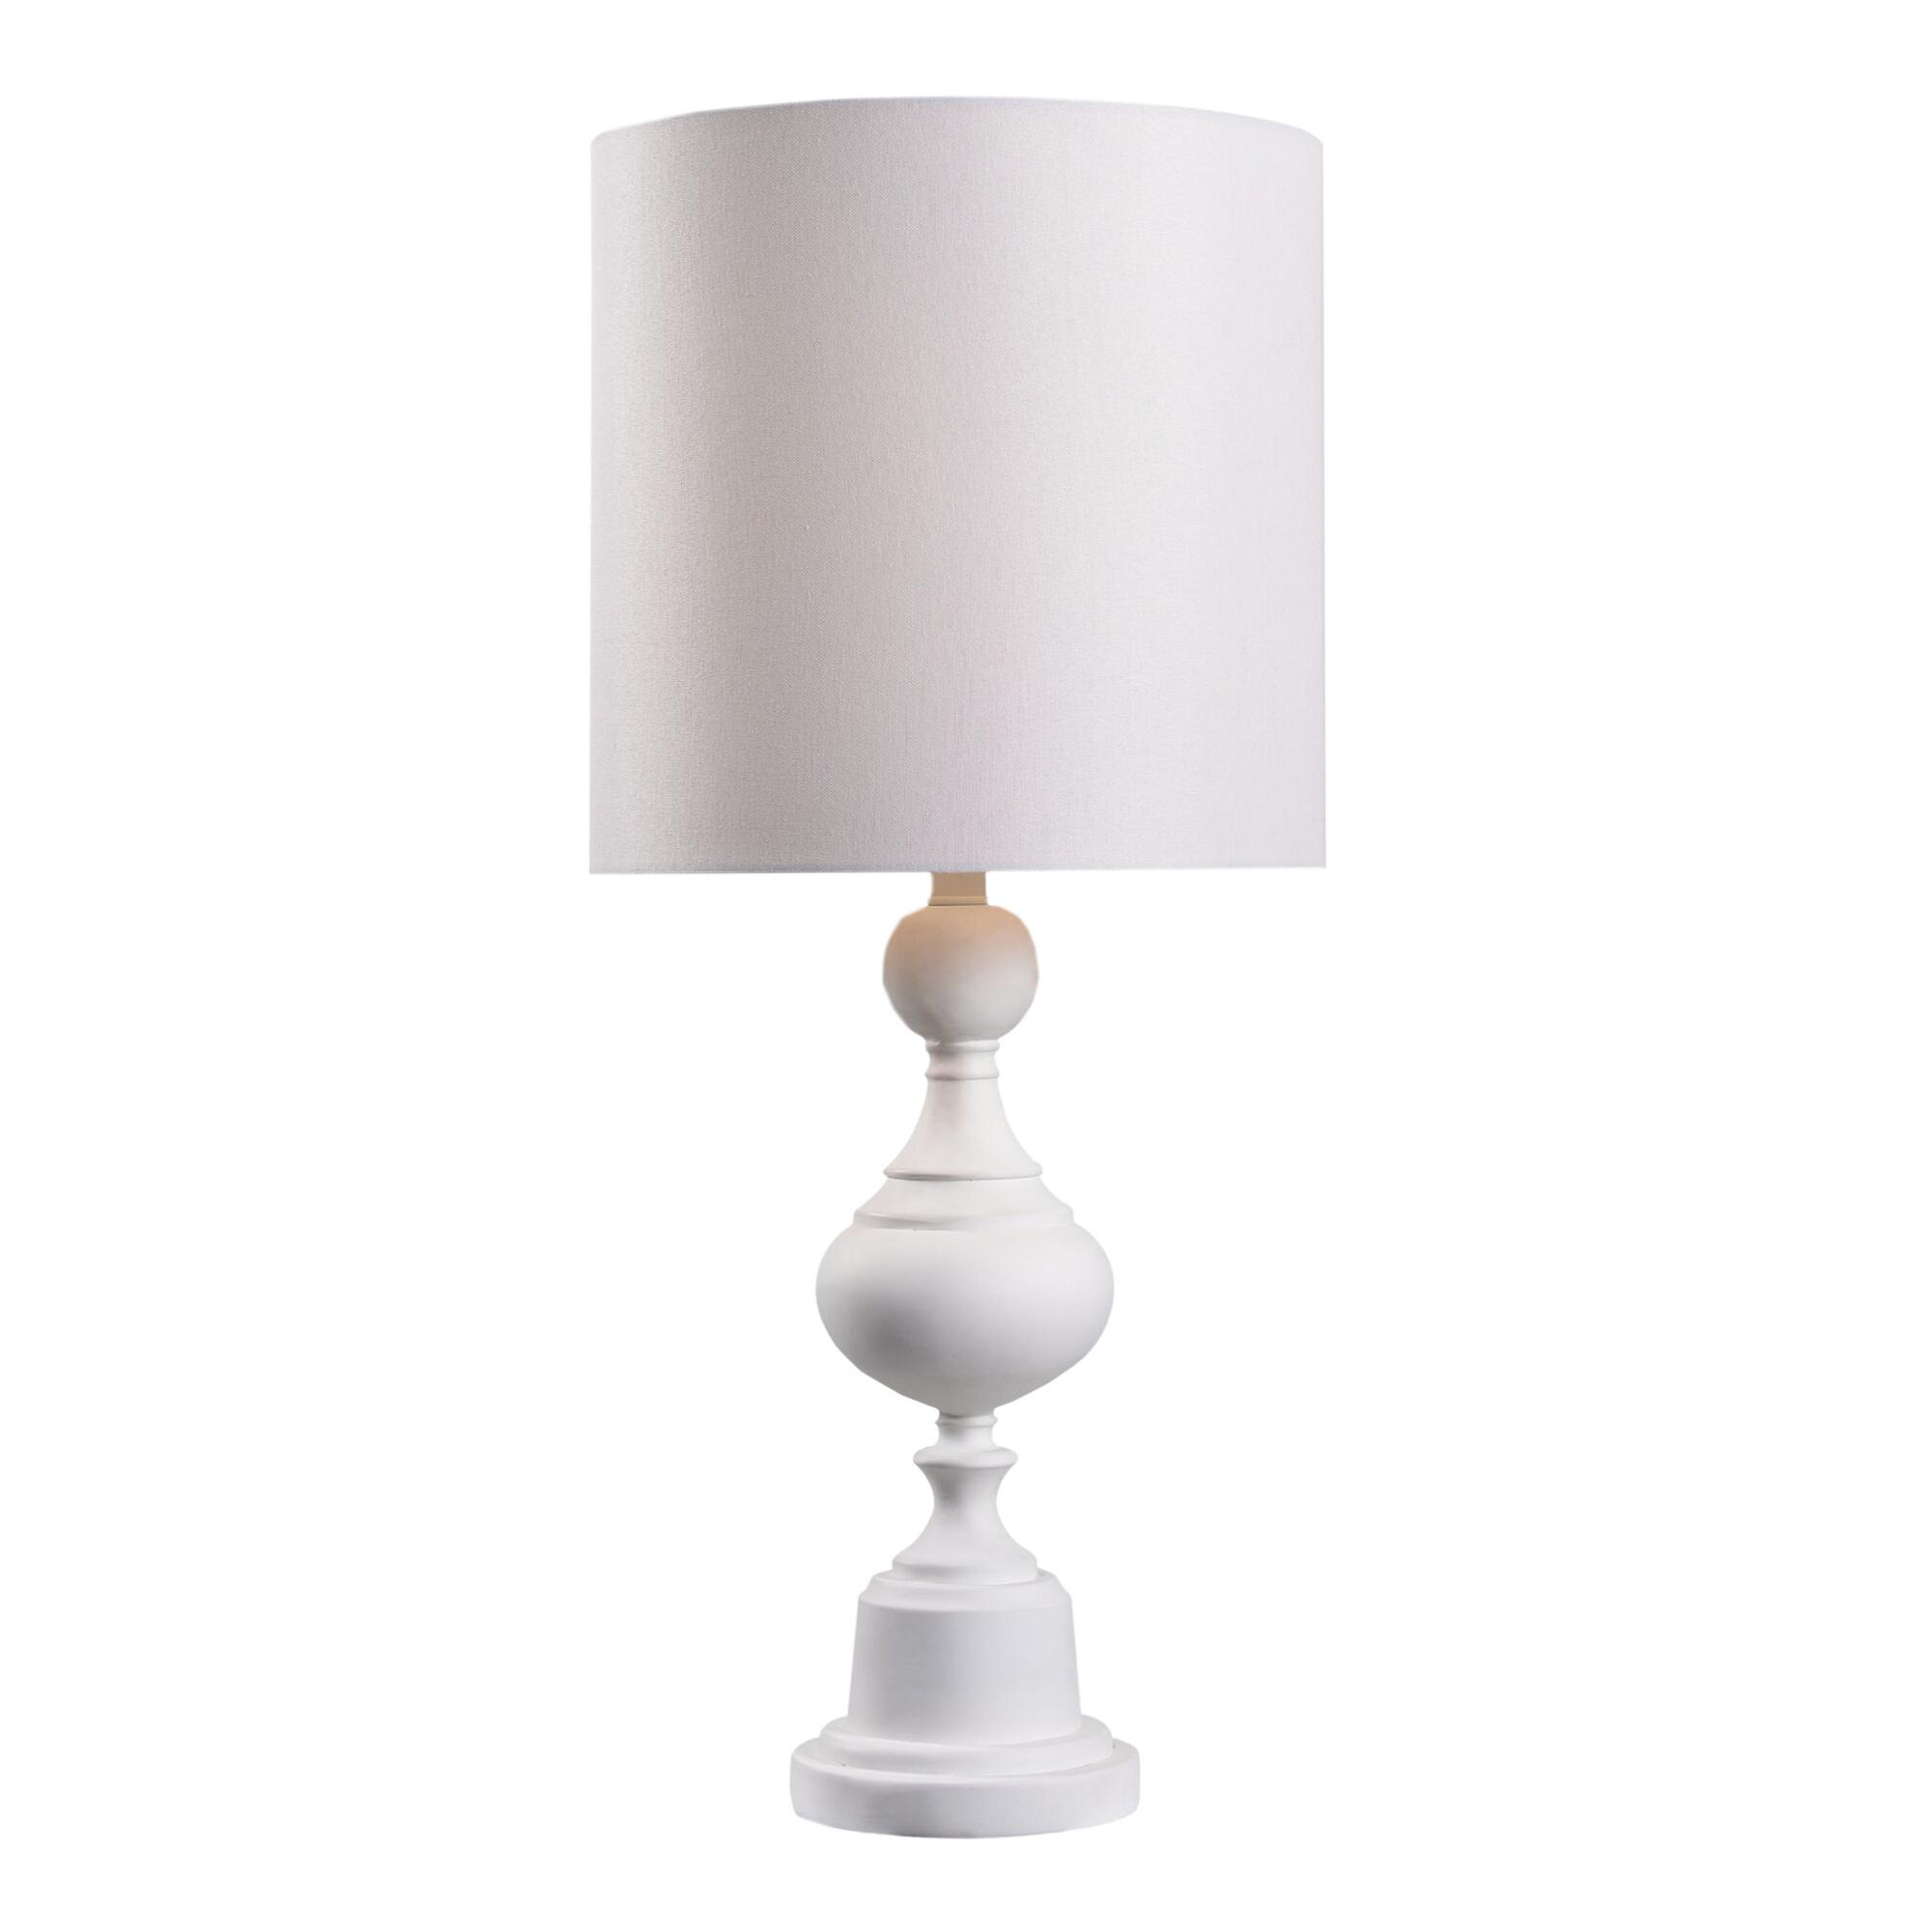 White Resin Toula Table Lamp and Shade Set by World Market